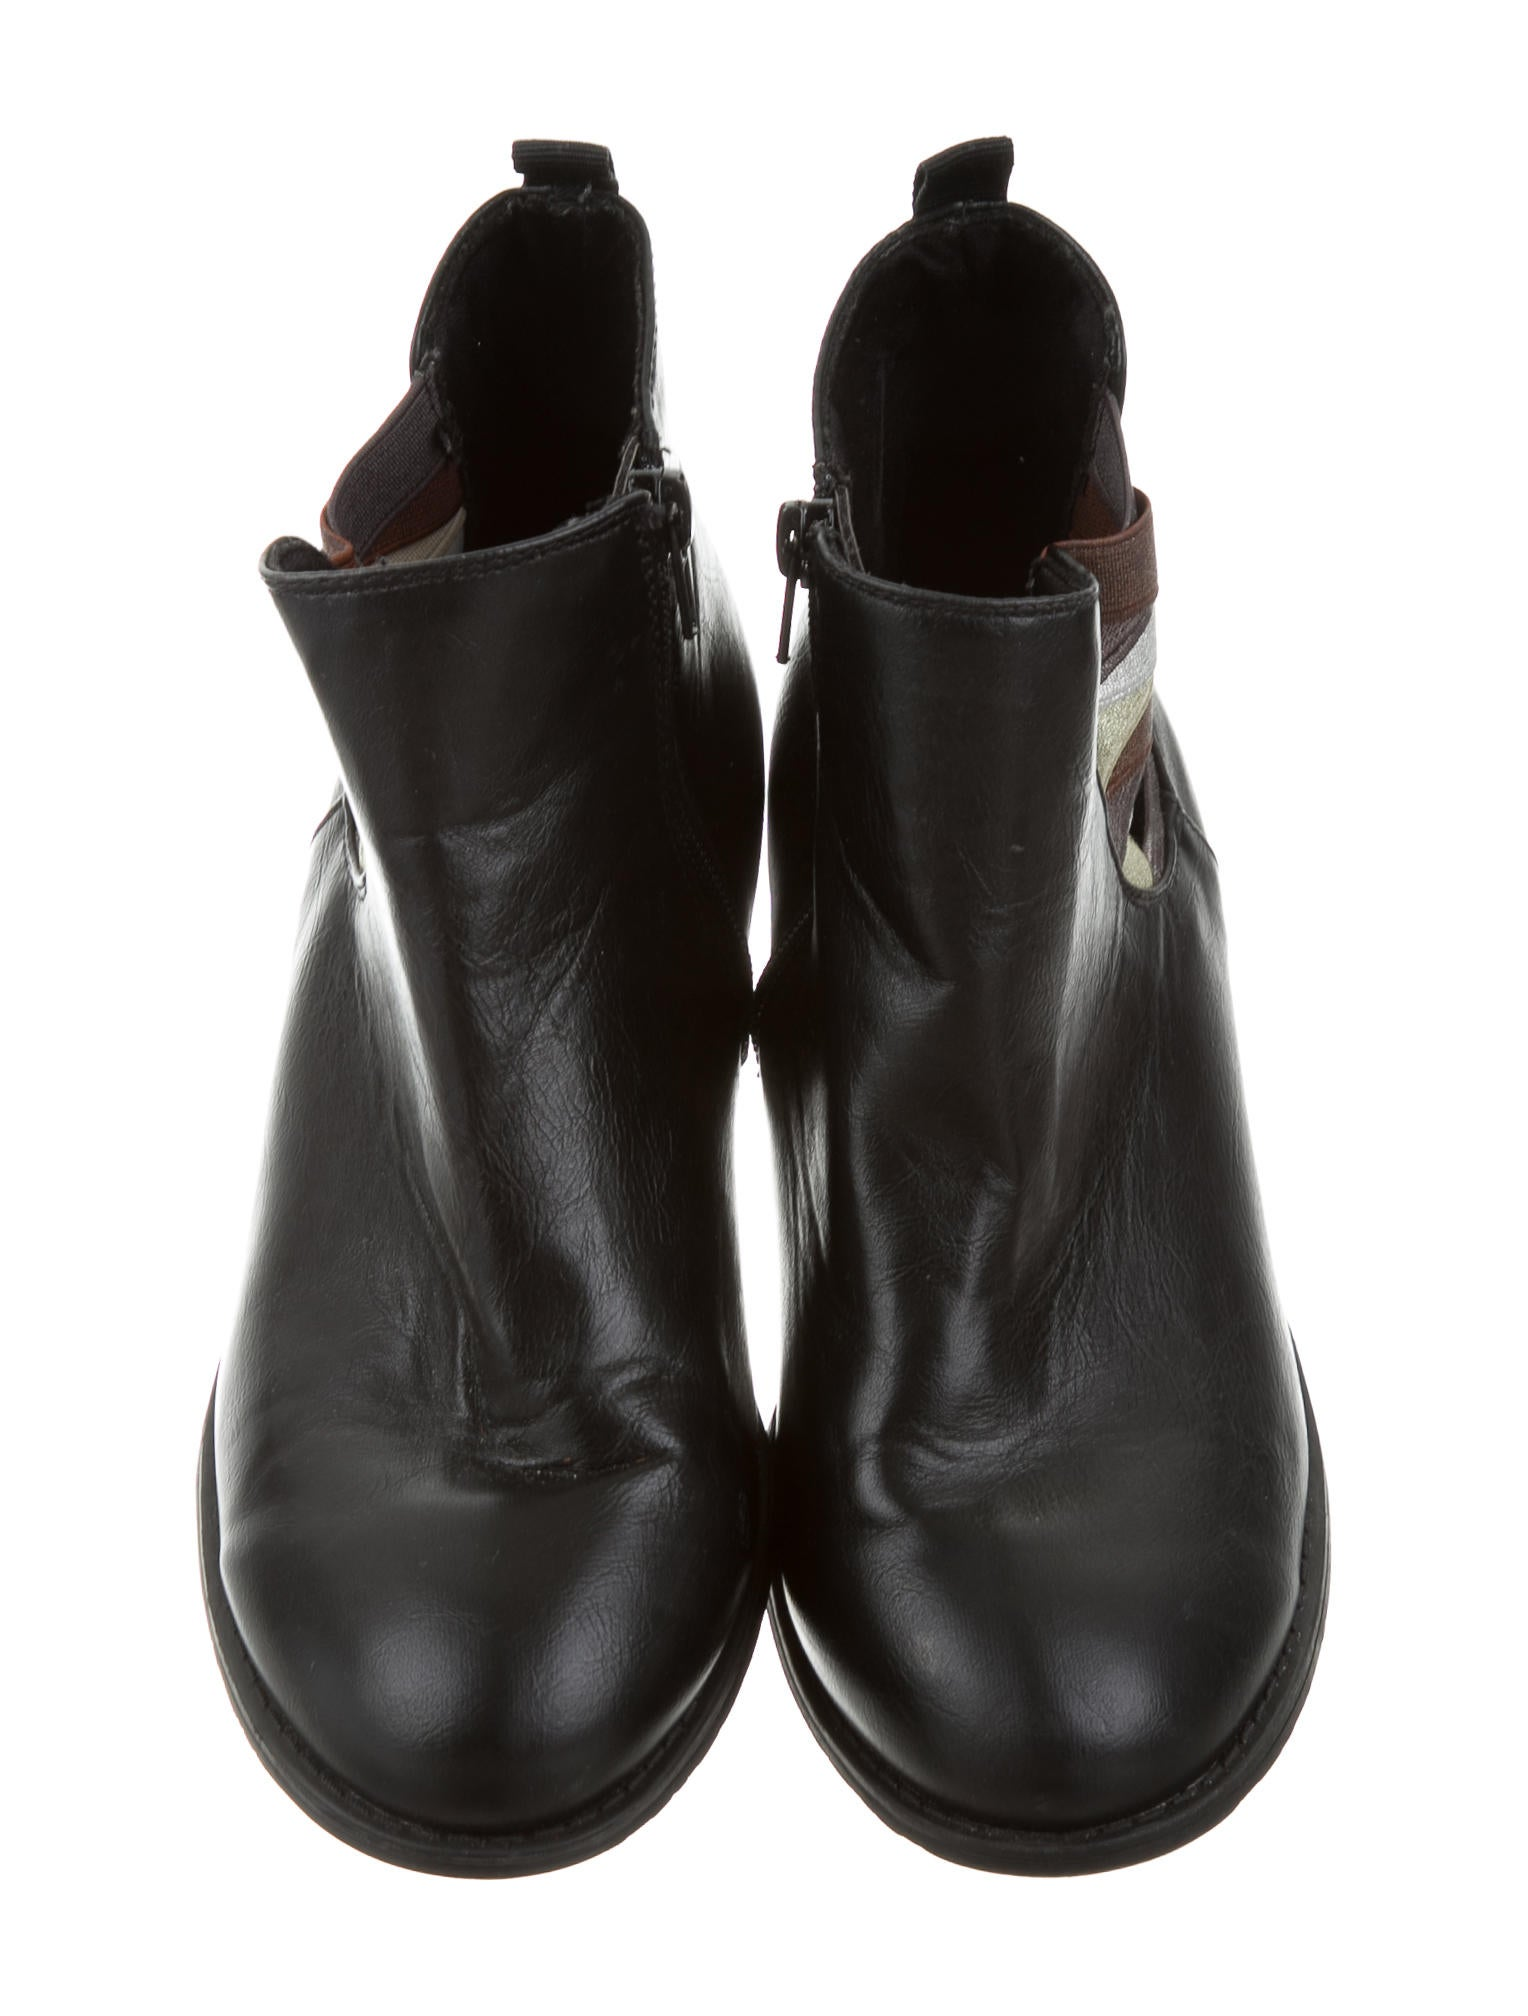 Ankle booties are a great option when you want full foot coverage without the bulk of tucking pants into or pulling them over the shaft of a higher boot. Pinterest.